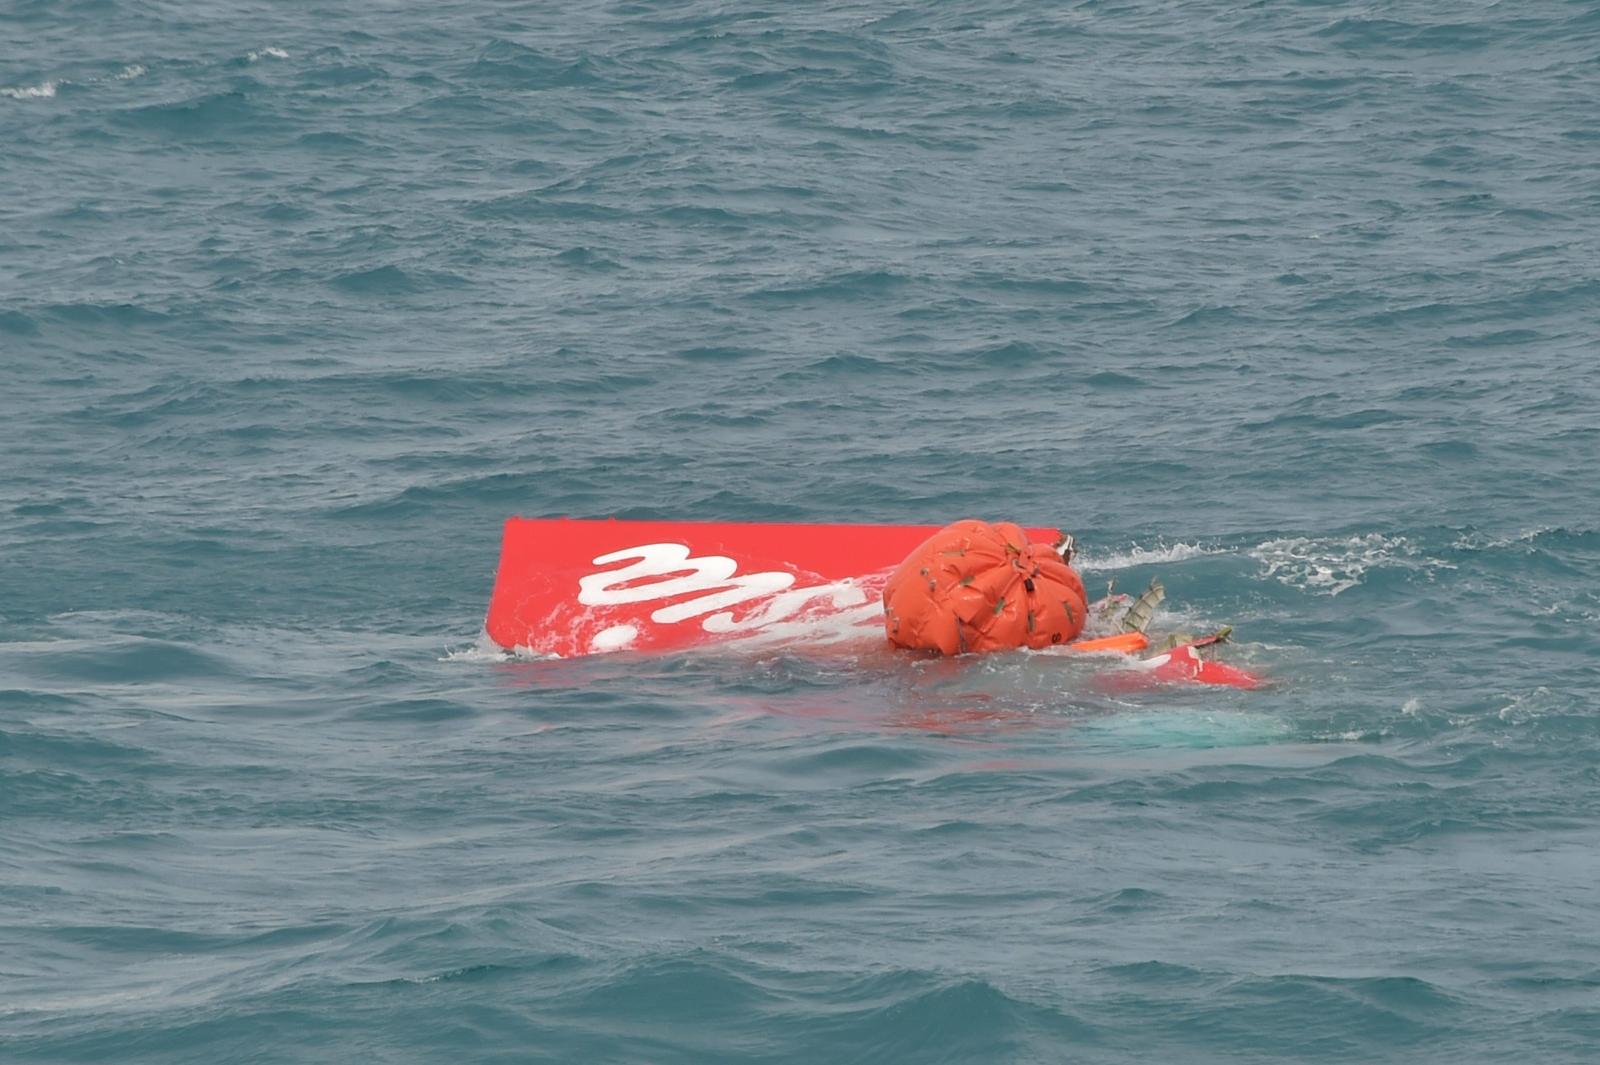 Air Asia flight crash recovery